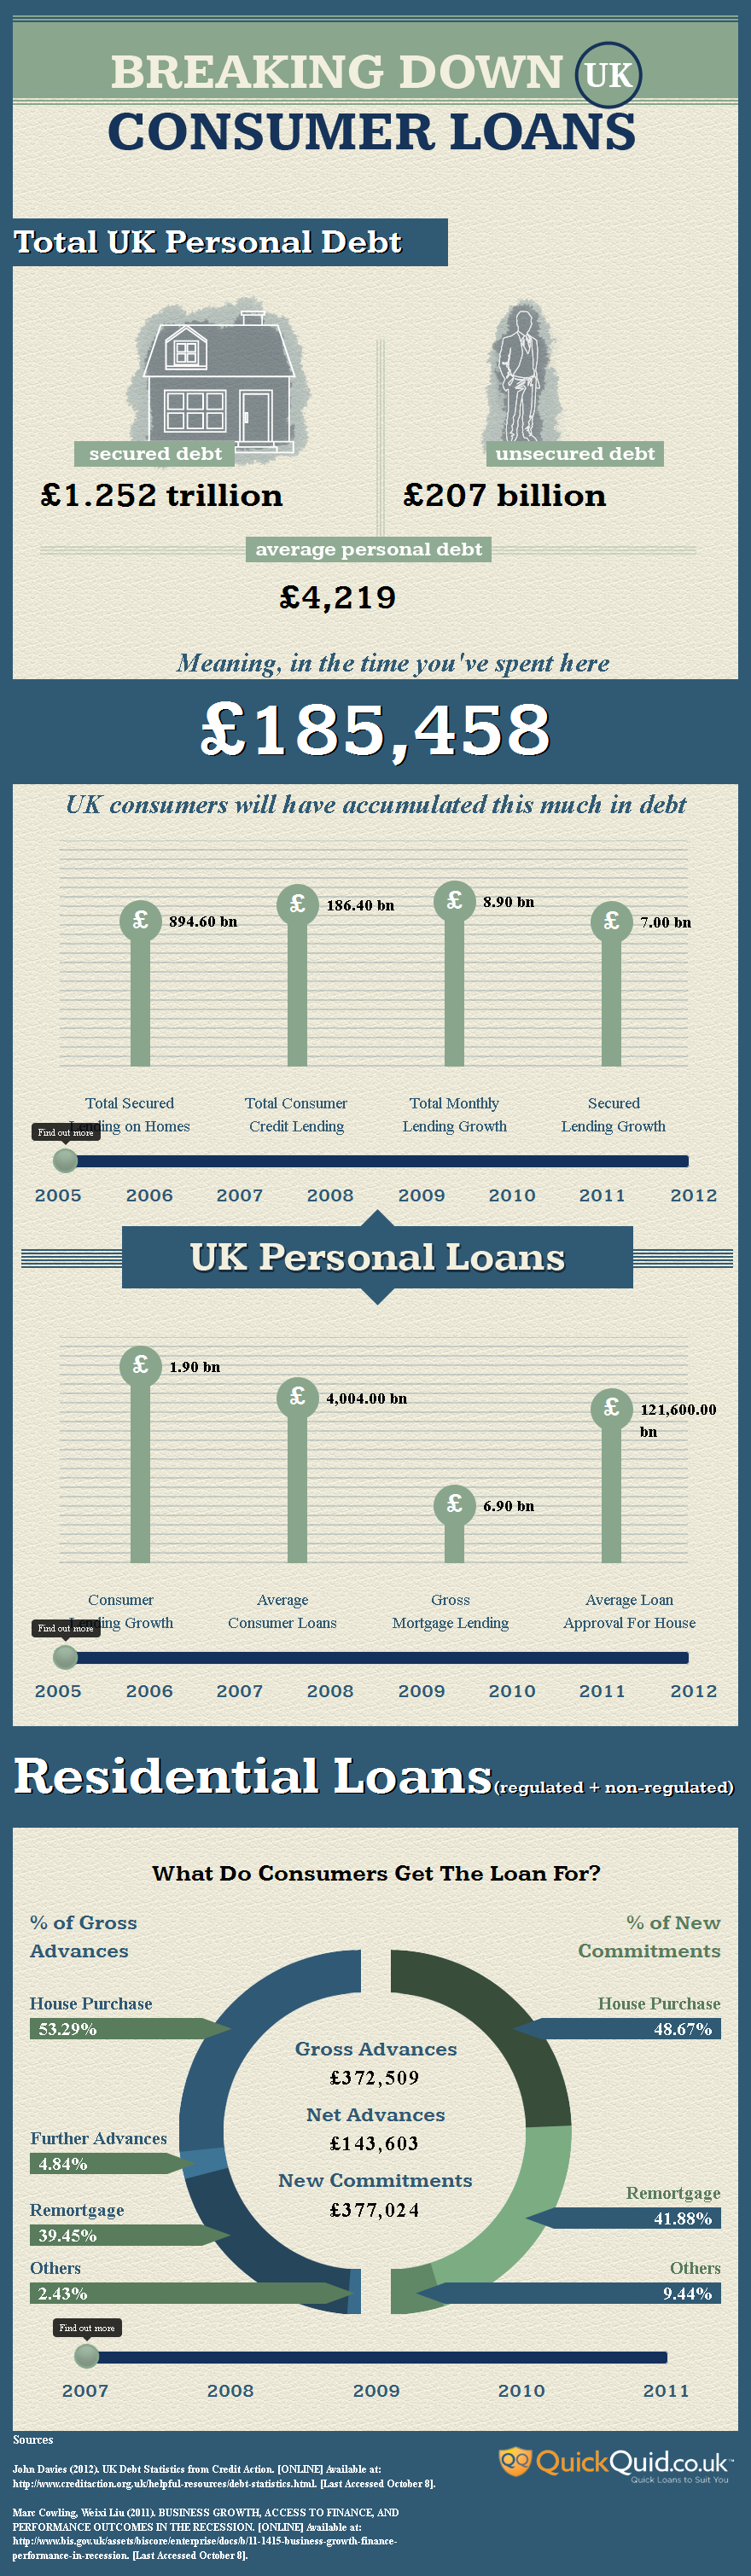 Breaking Down Consumer Loans In The UK - Interactive Infographic